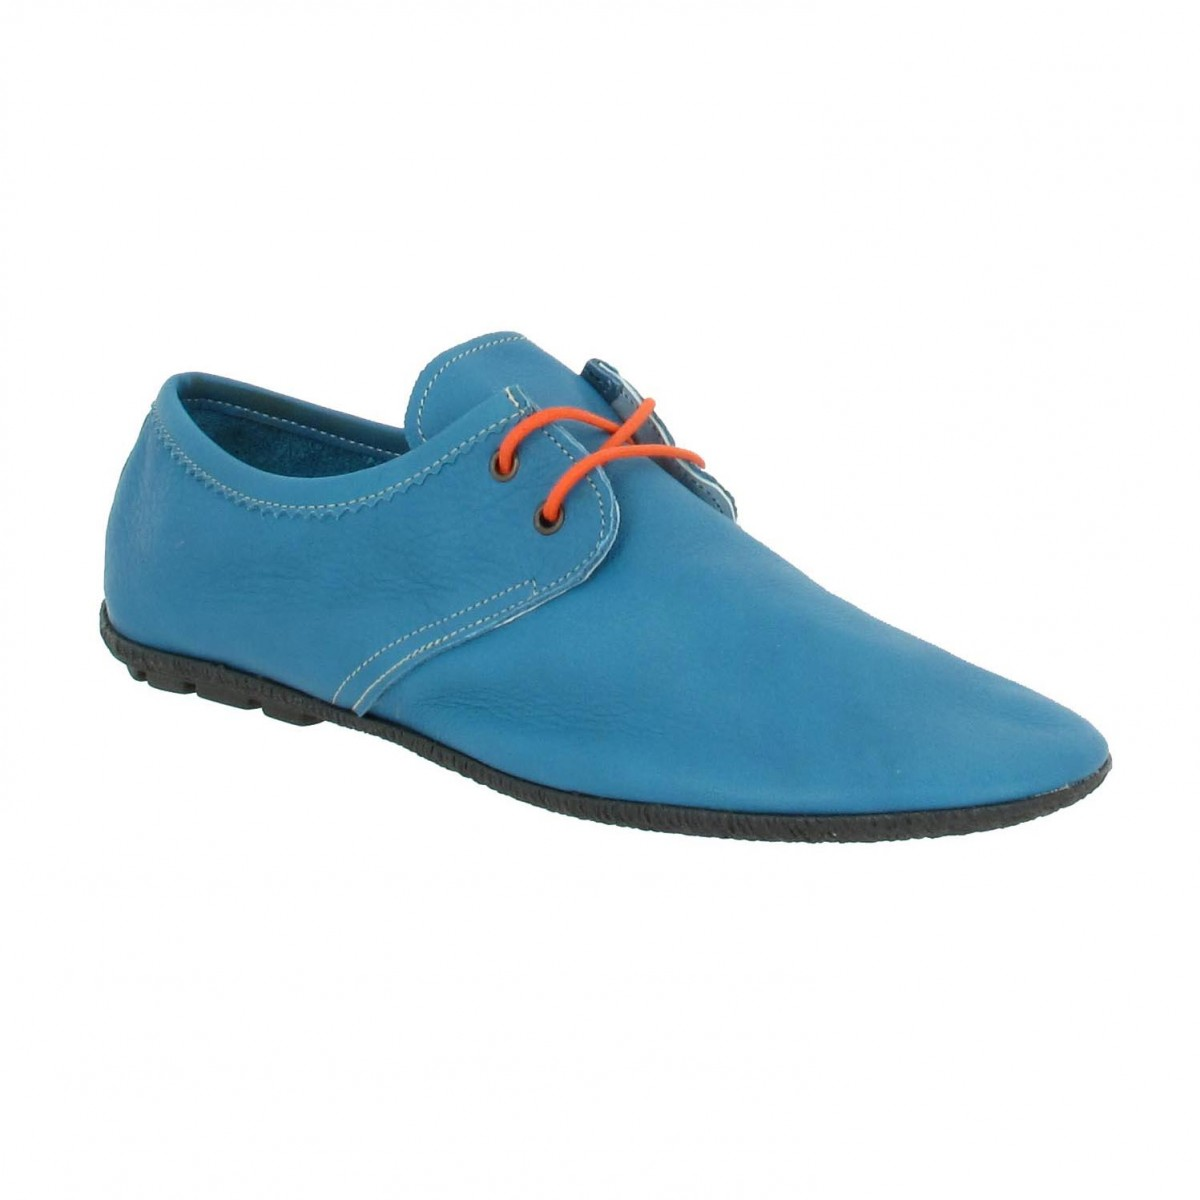 Femme 4999 By Meger Cuir Fanny TurquoiseChaussures ymNnOvwP80